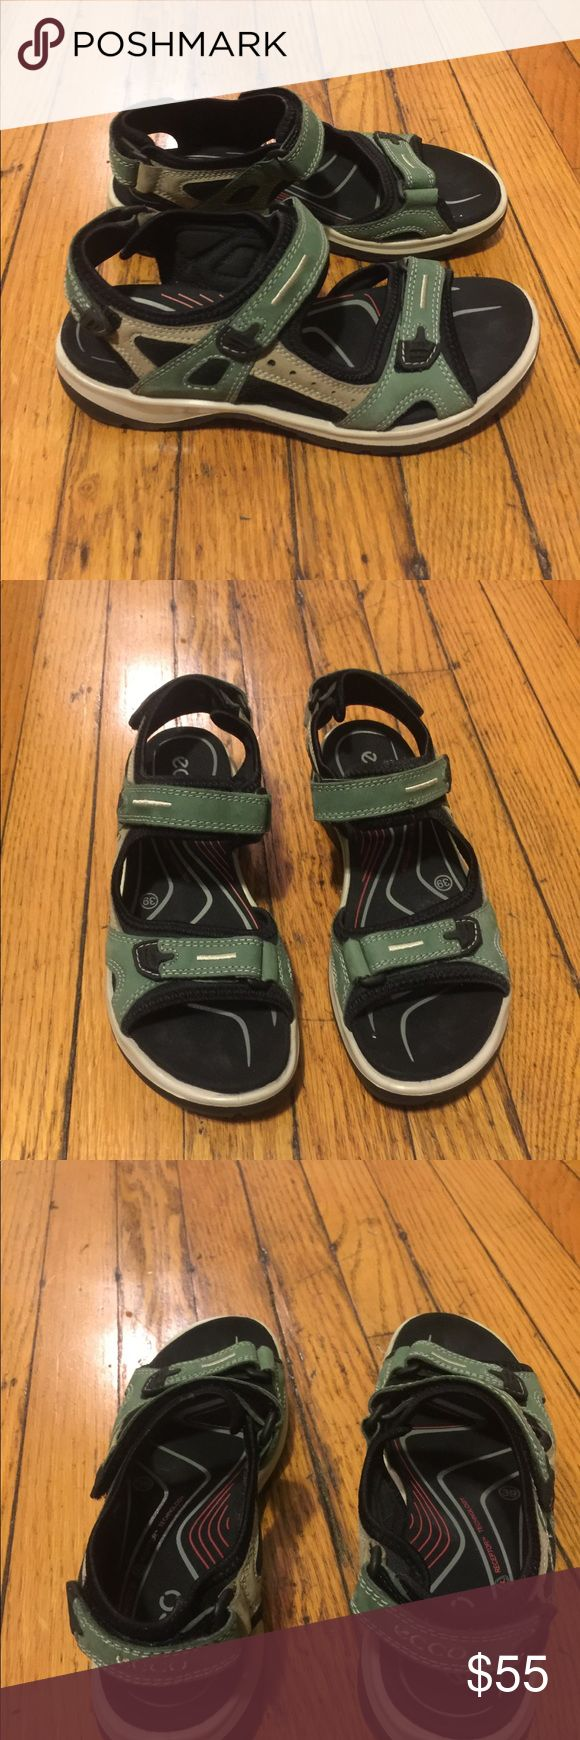 Ecco sandals Nice pair of Ecco Sandals worn once.EUC.Moon rock green.NICE Ecco Shoes Sandals